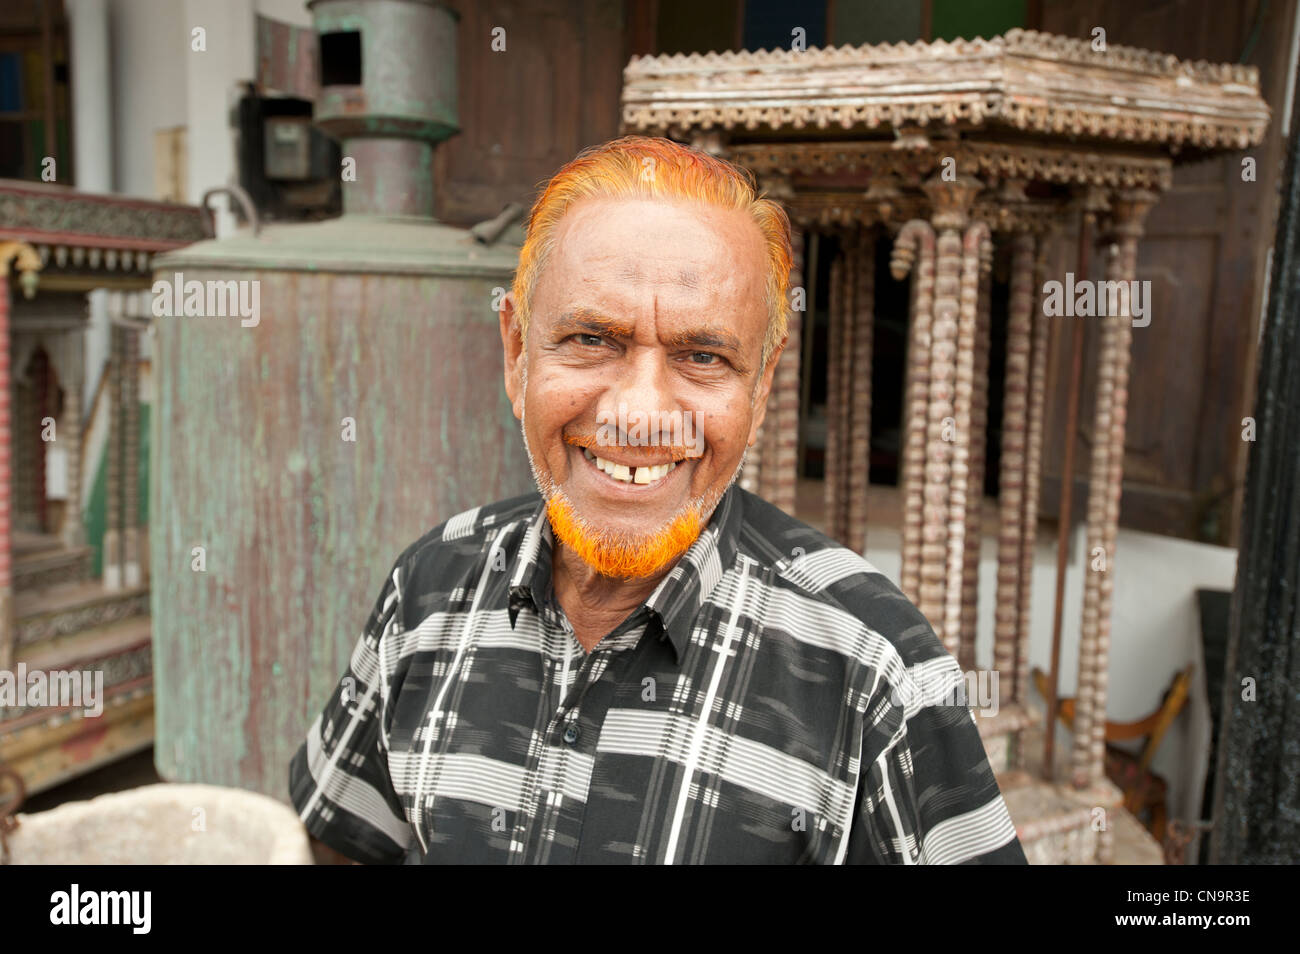 Portrait of a Muslim man with orange dyed beard and hair Glle Fort Sri Lanka - Stock Image